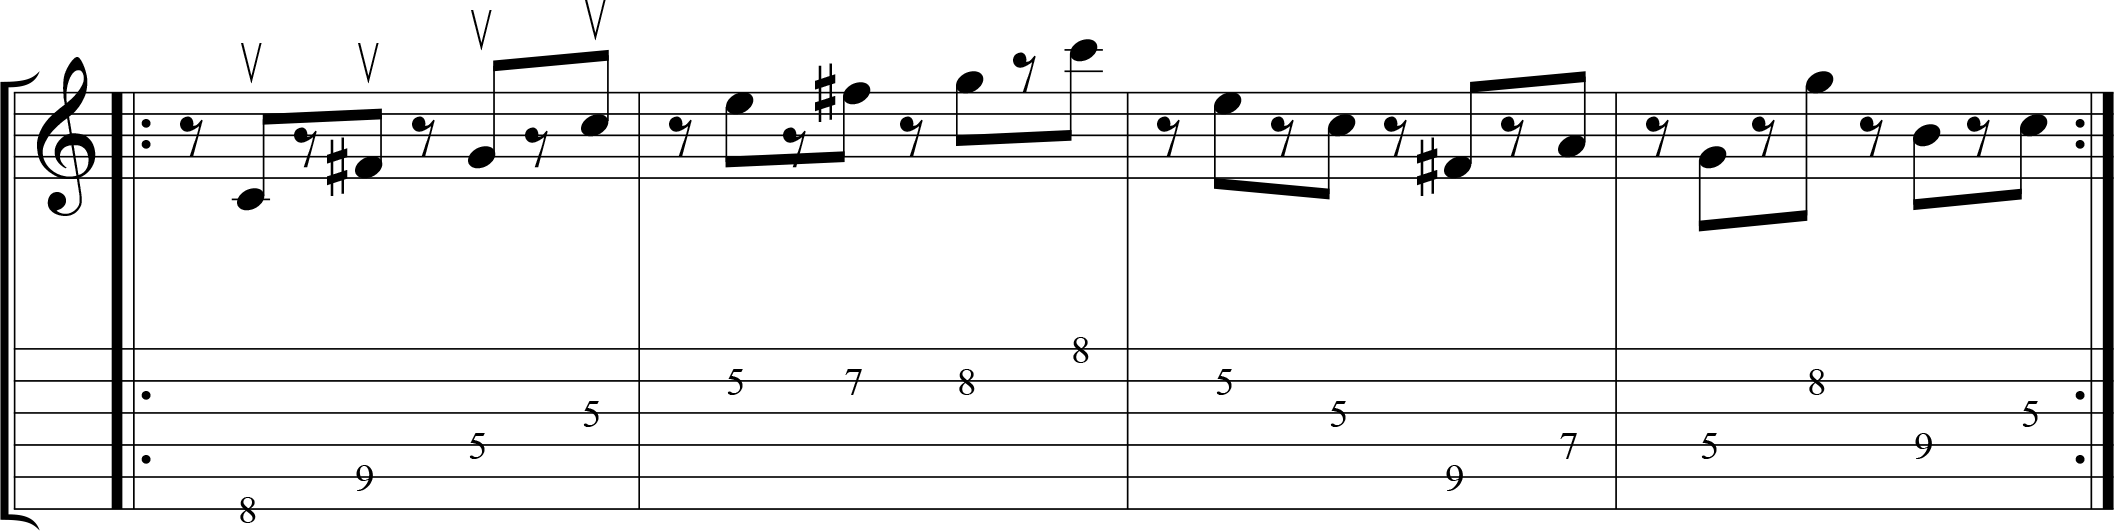 Up-picking exercise in a contemporary musical style.